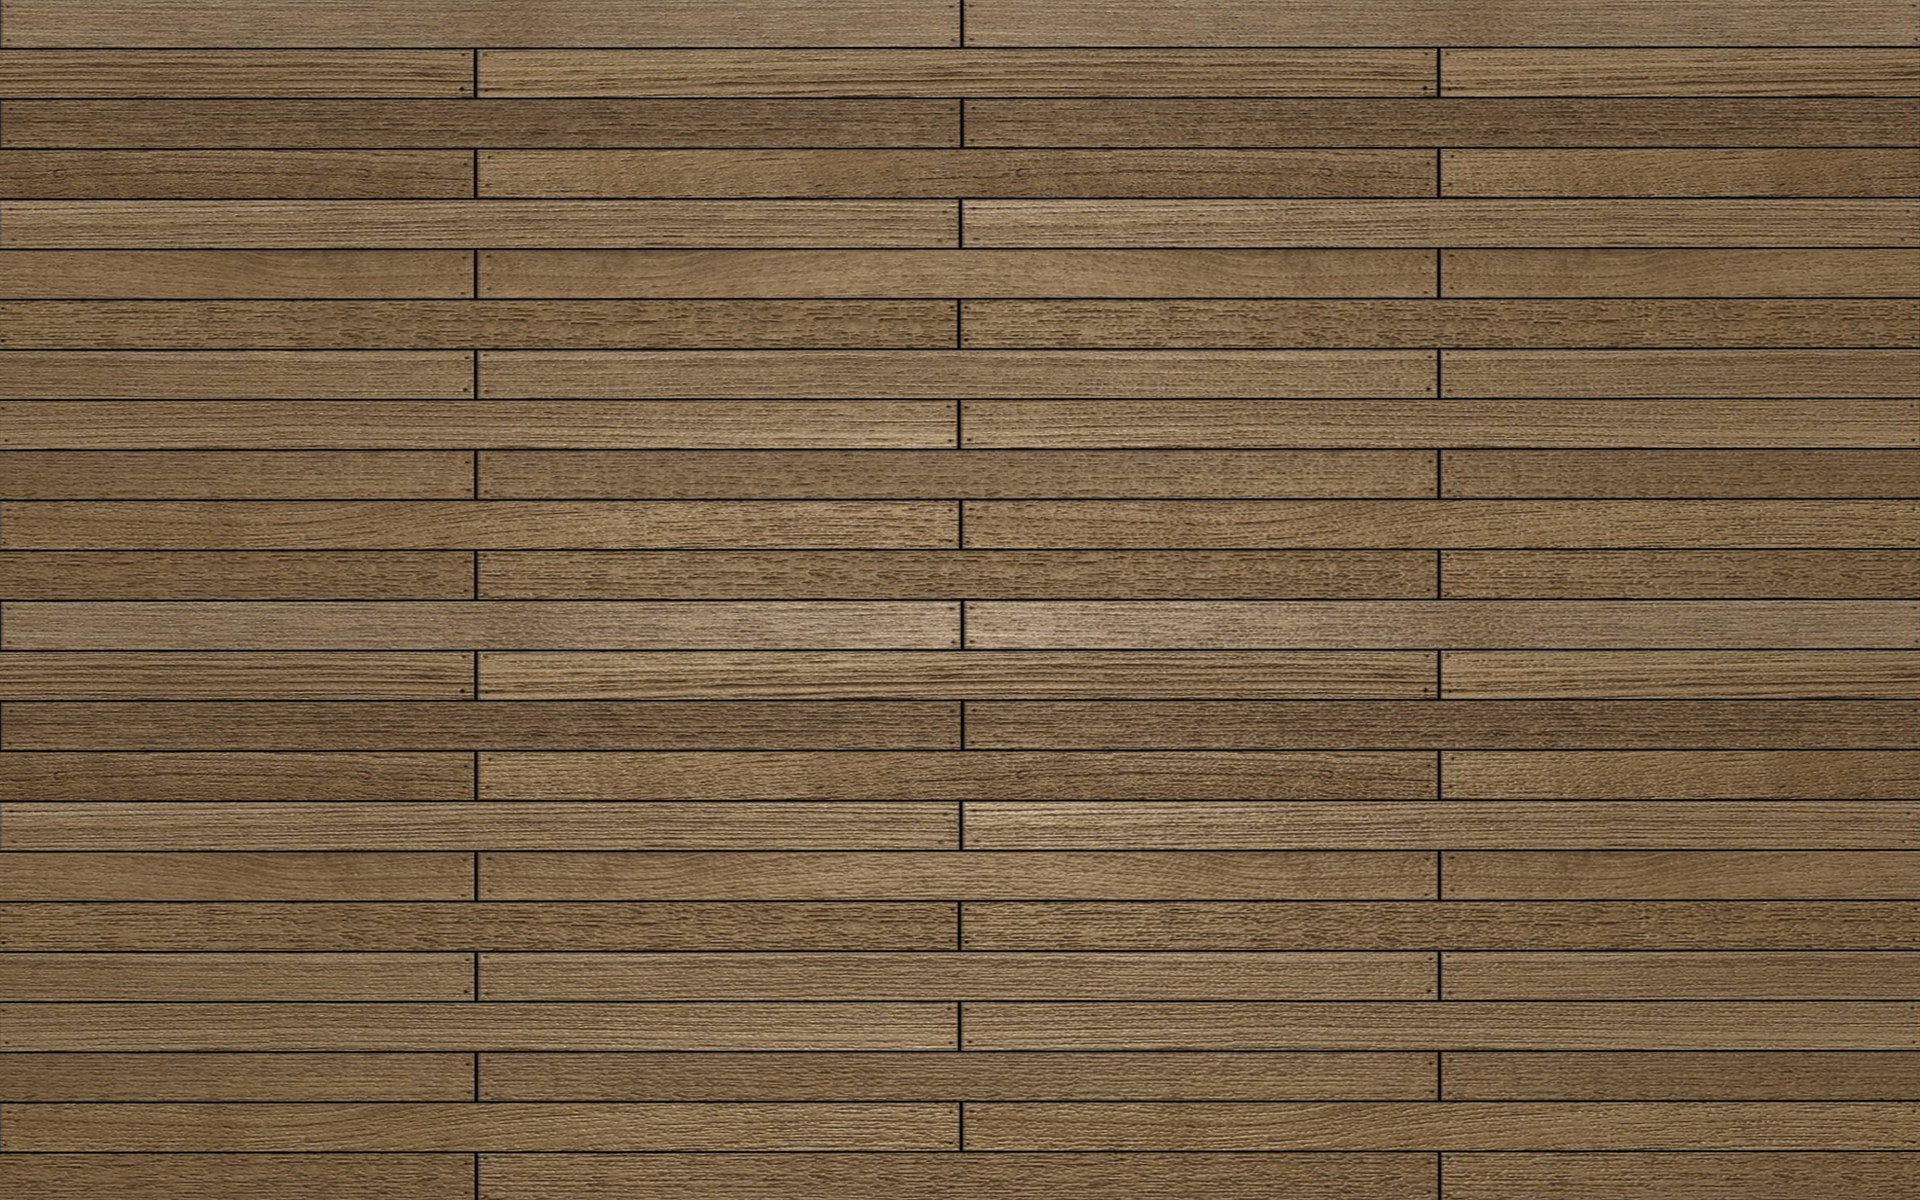 dark wood floors pattern for revit wood floors. Black Bedroom Furniture Sets. Home Design Ideas